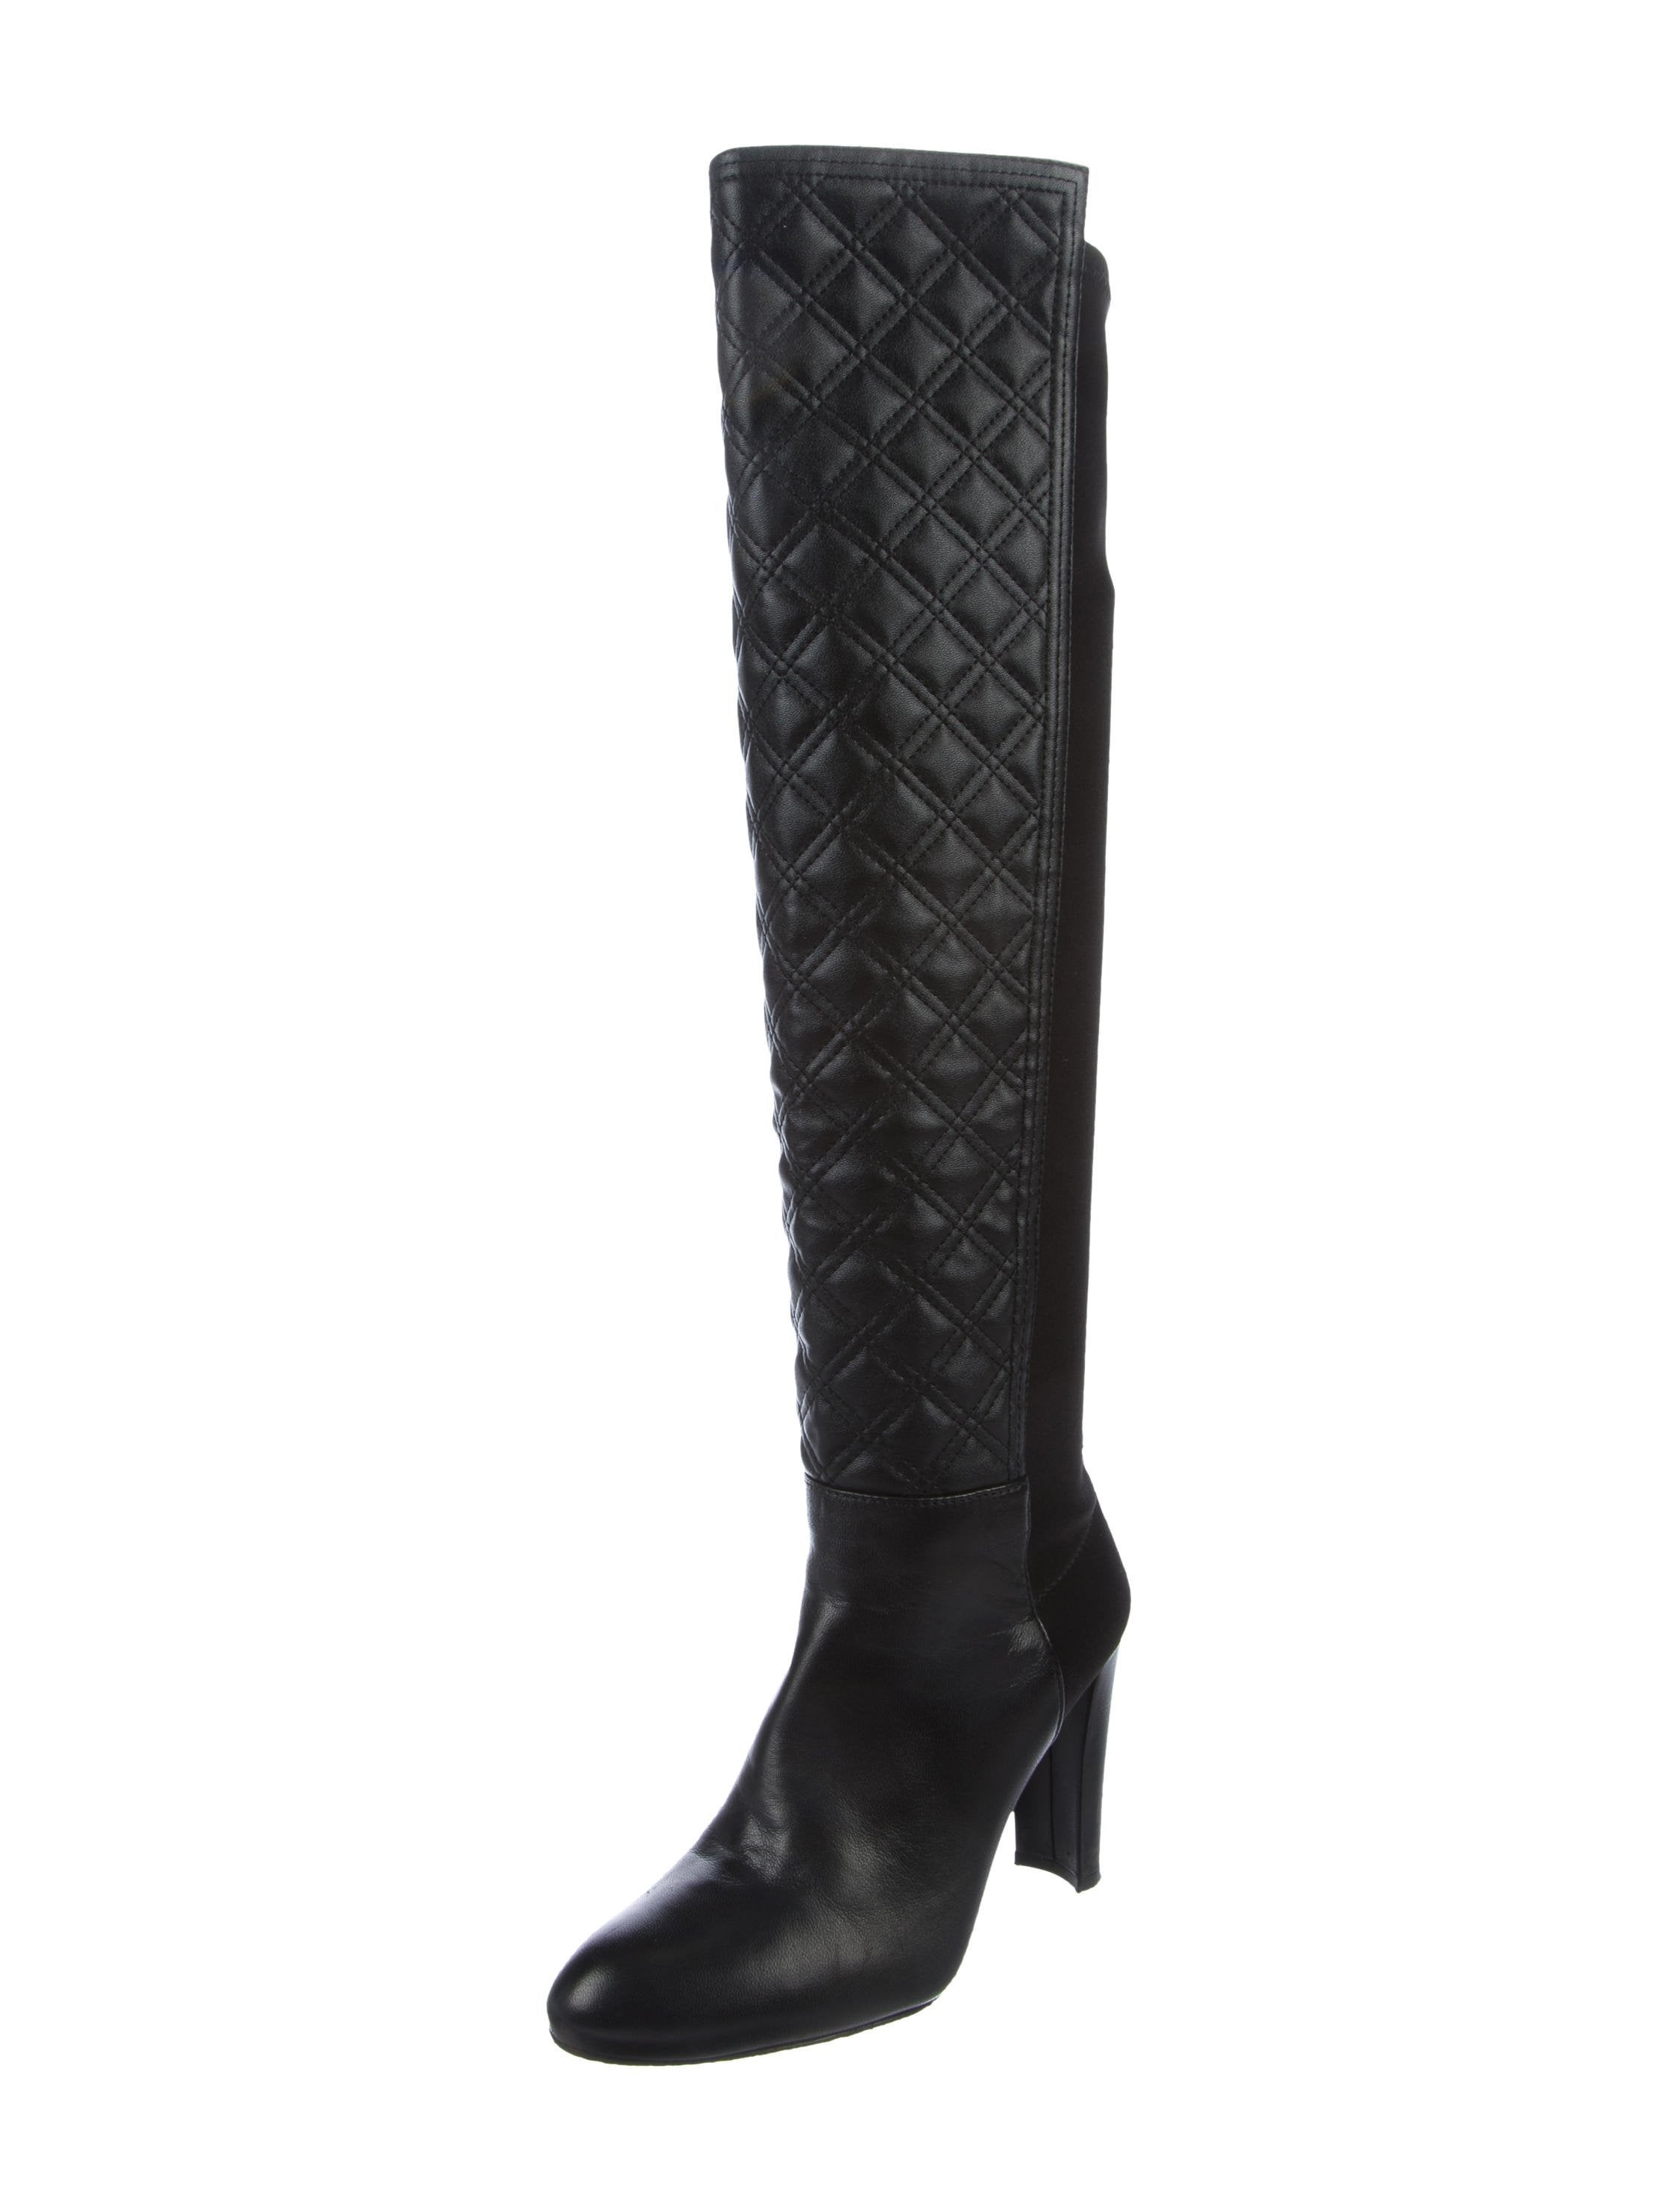 Stuart Weitzman Quilted 50/50 Knee-High Boots - Shoes - WSU38410 ... : stuart weitzman quilted boots - Adamdwight.com